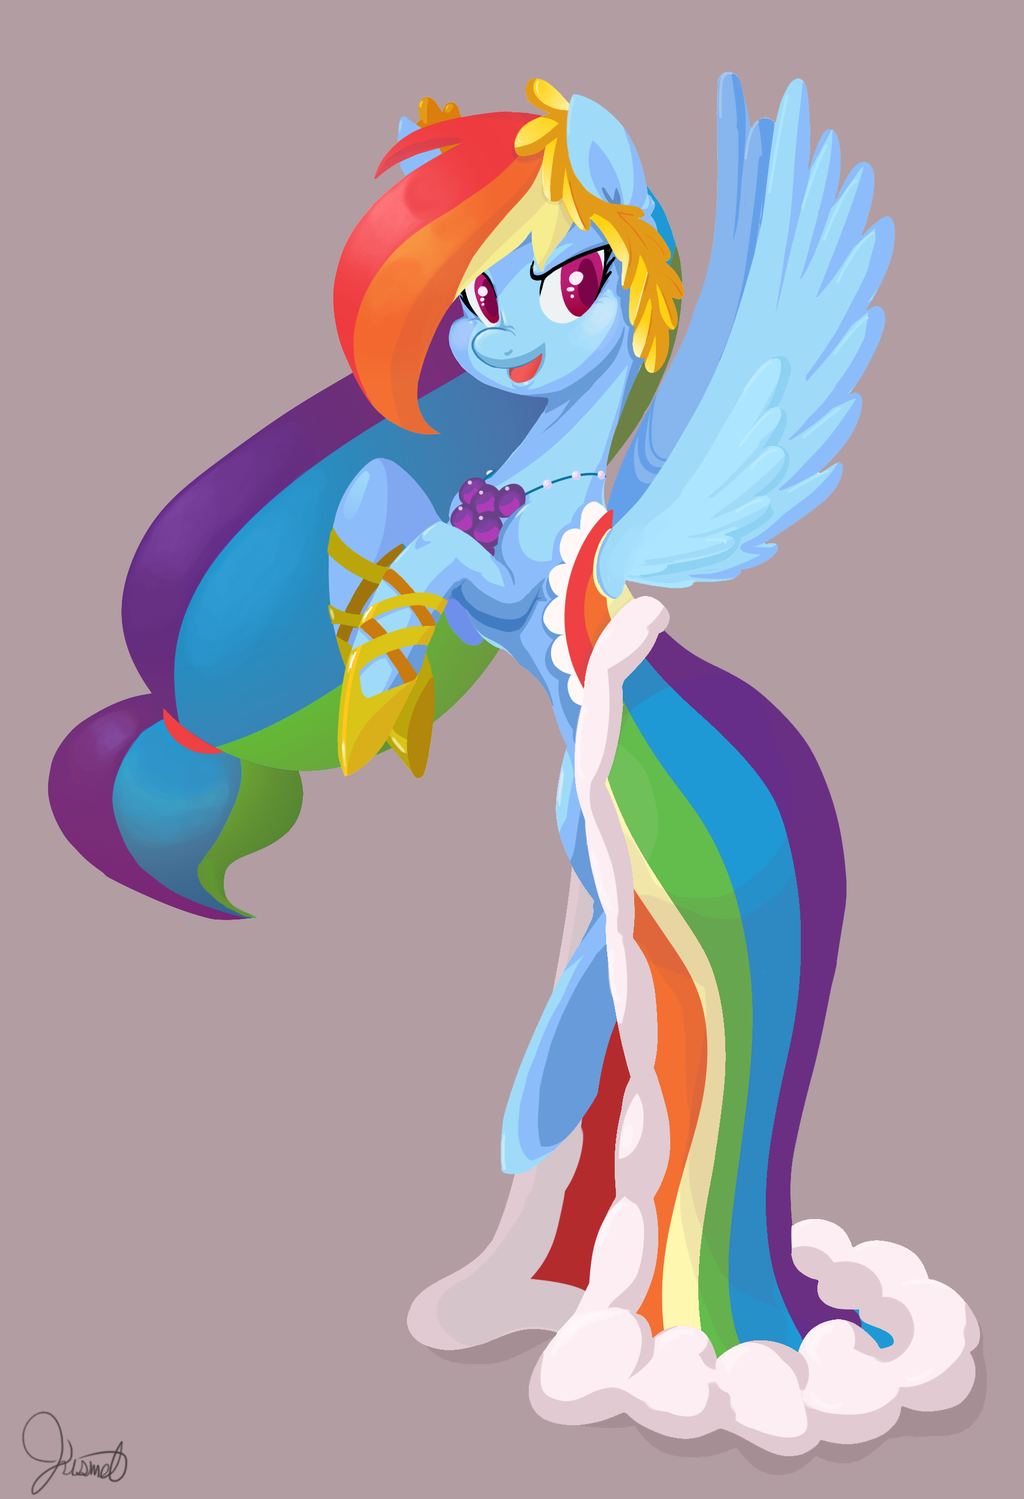 476071 Artist Twitchykismet Clothes Dress Gala Dress Rainbow Dash Safe Solo